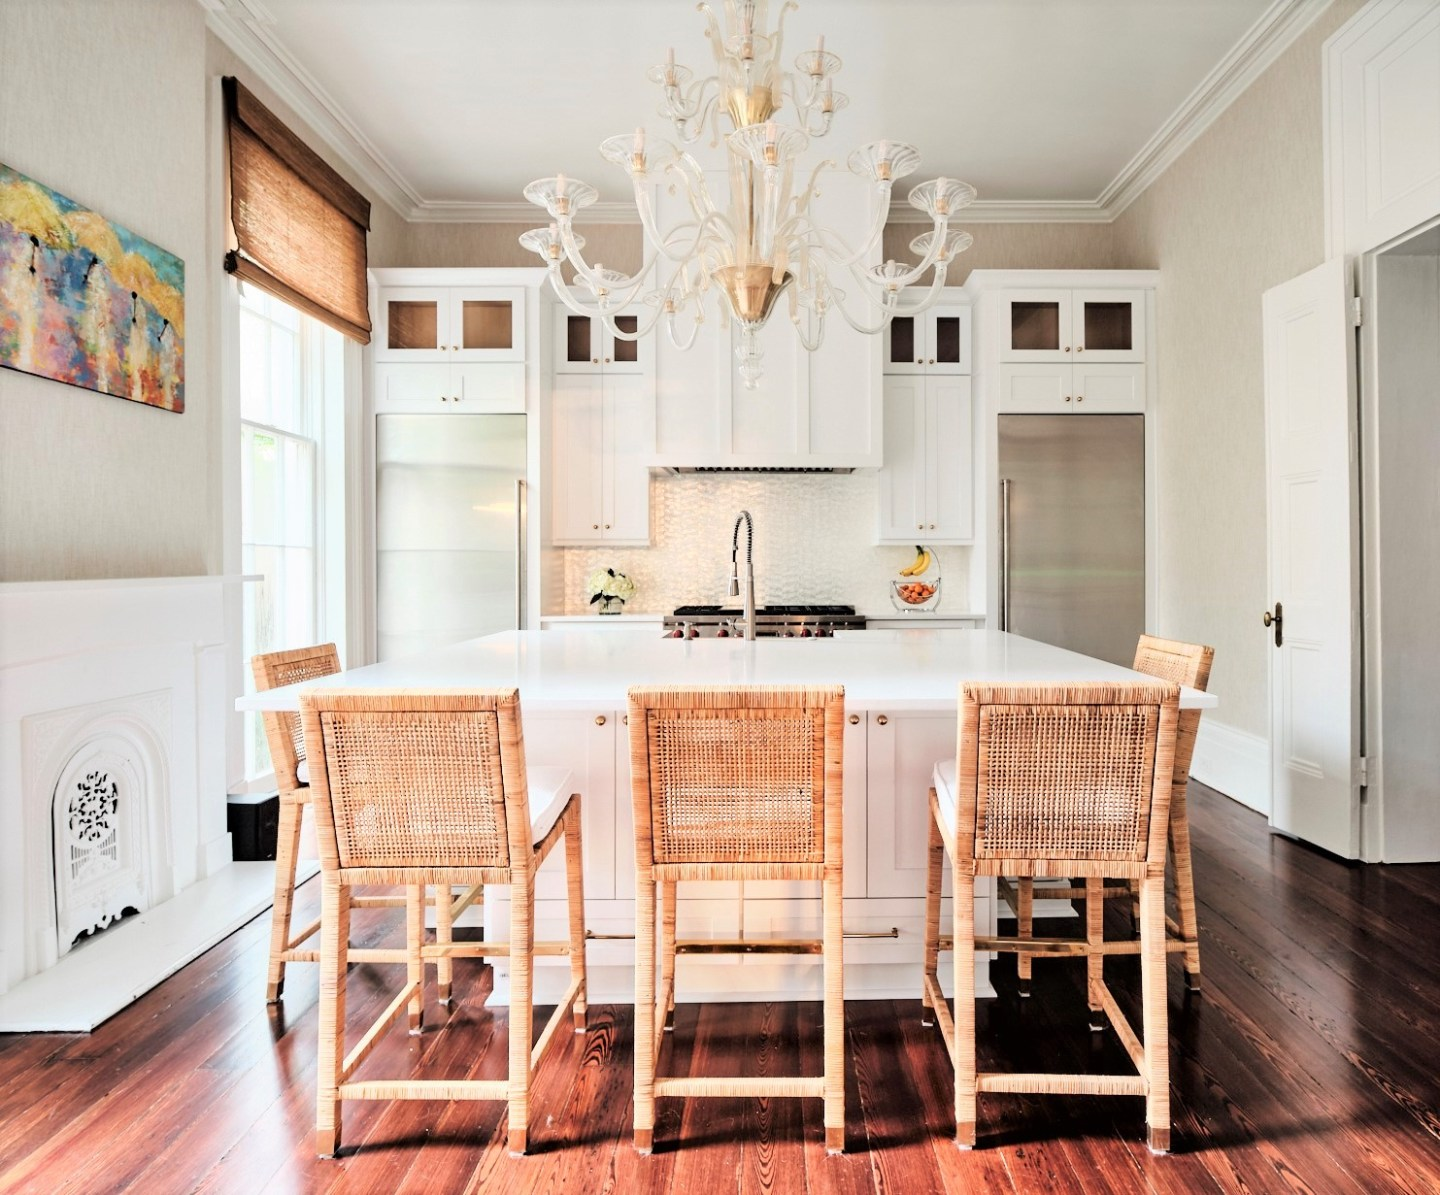 St-Charles-Kitchen-Crop-1440x1195 Tips To Consider When Remodeling a Kitchen from New Orleans Designer, April Vogt